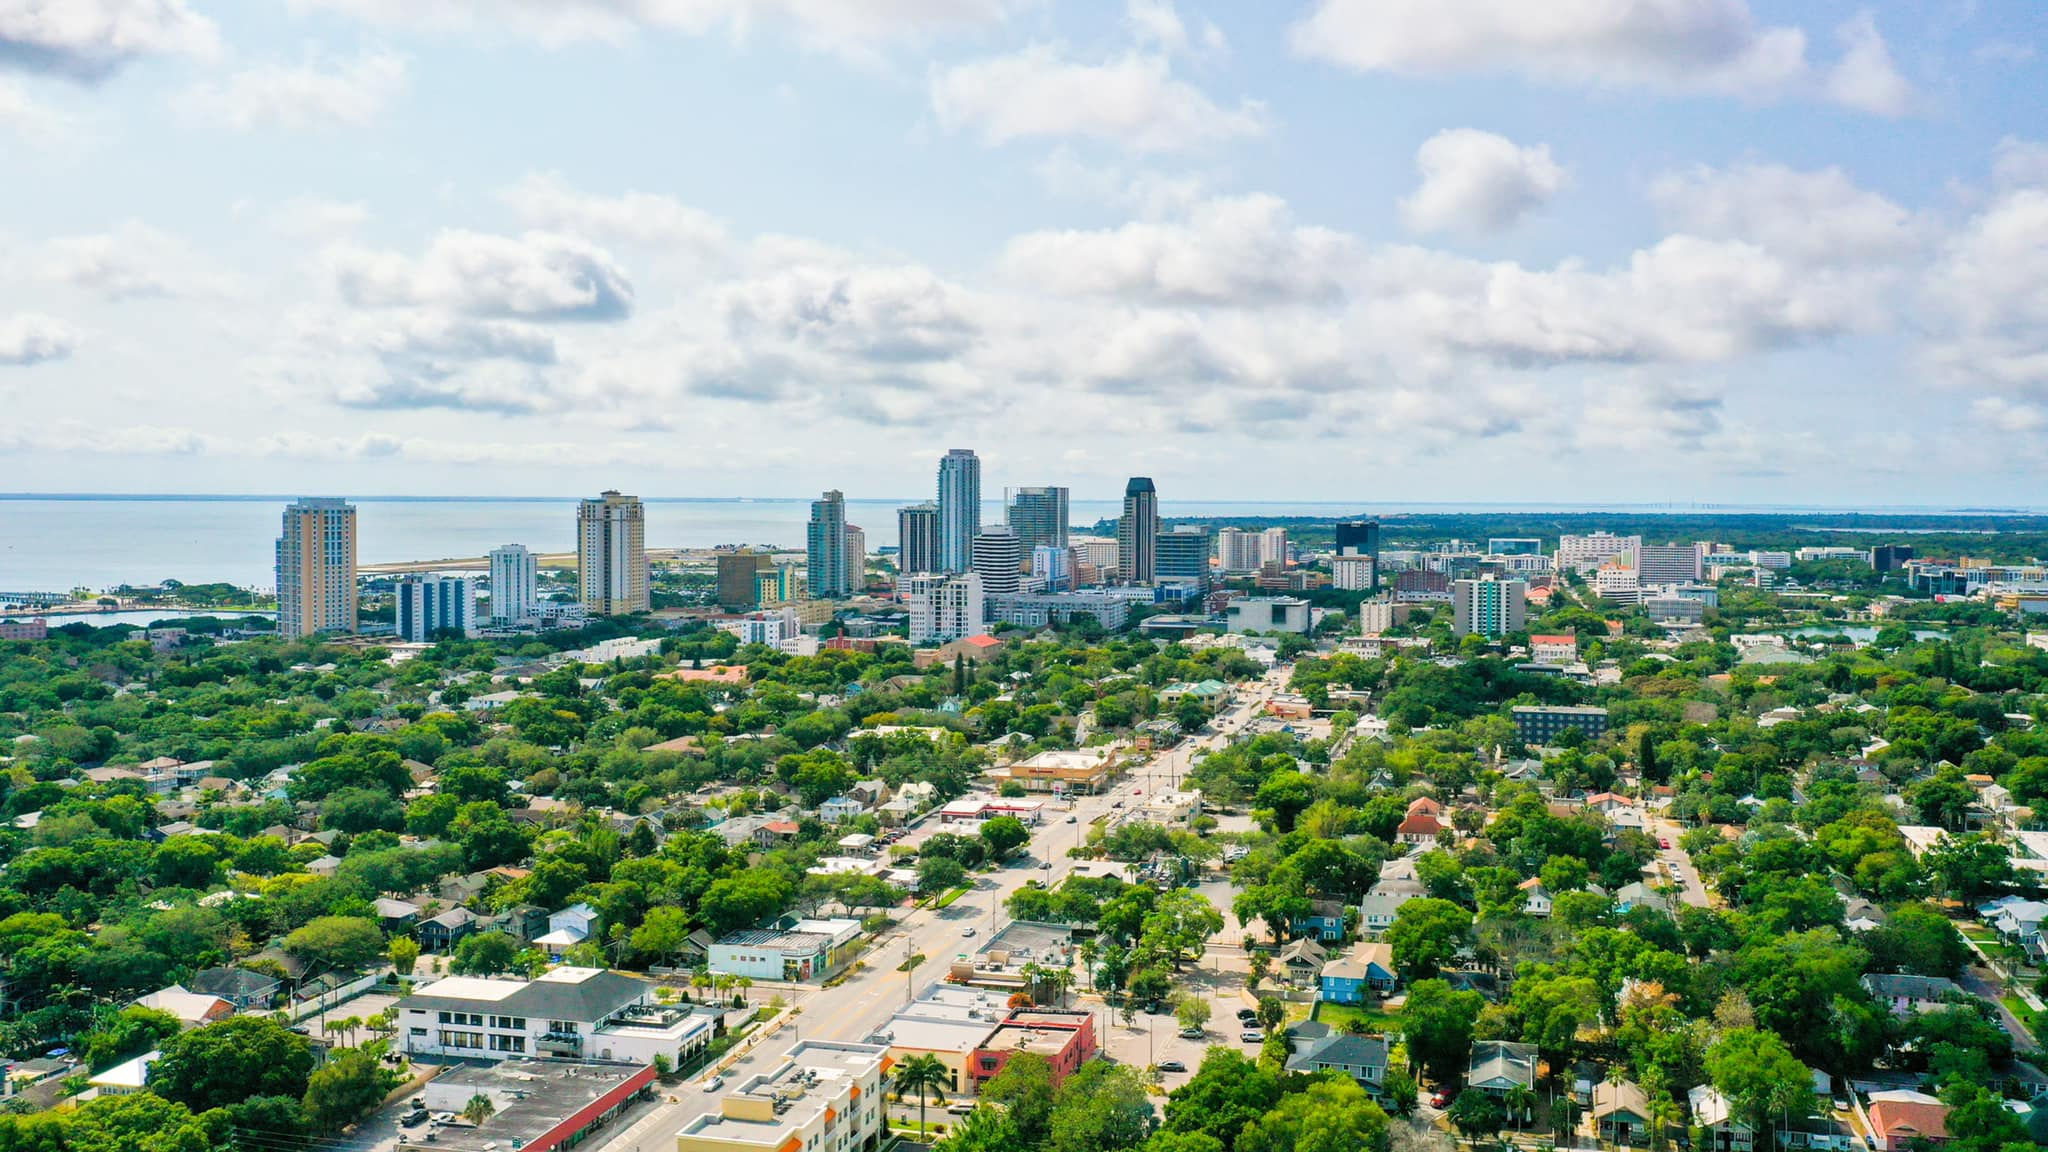 Skyline from the City of St. Petersburg Florida.